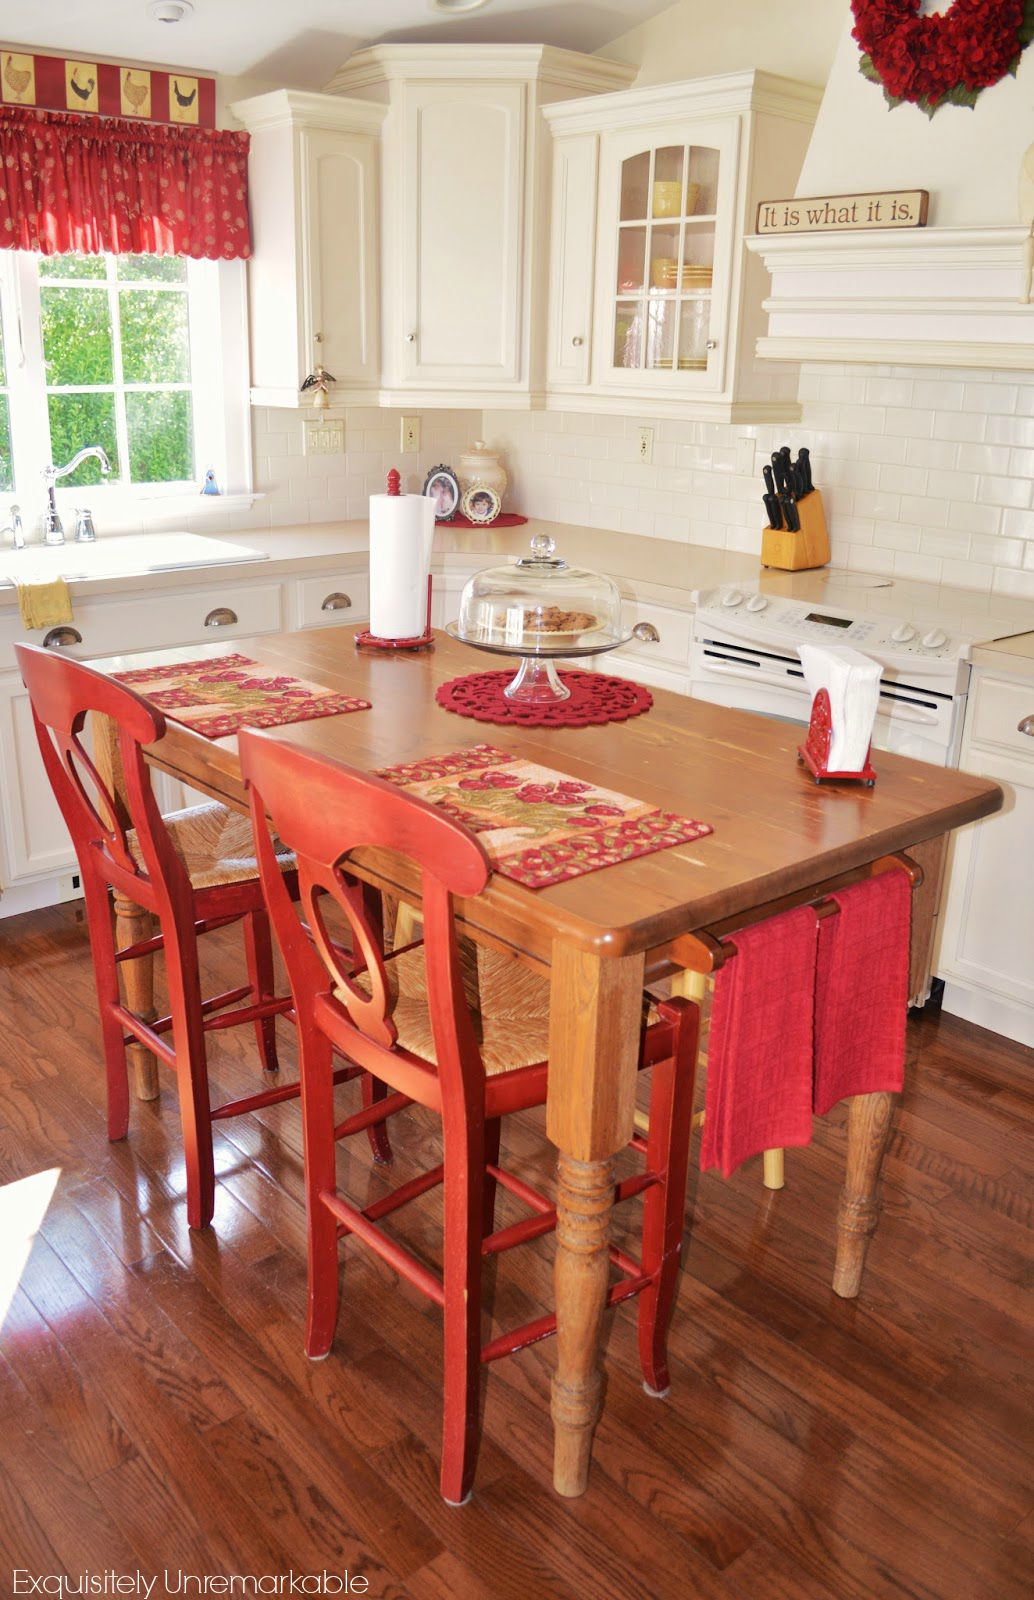 Turn Your Kitchen Table Into A Farmhouse Island Exquisitely Unremarkable